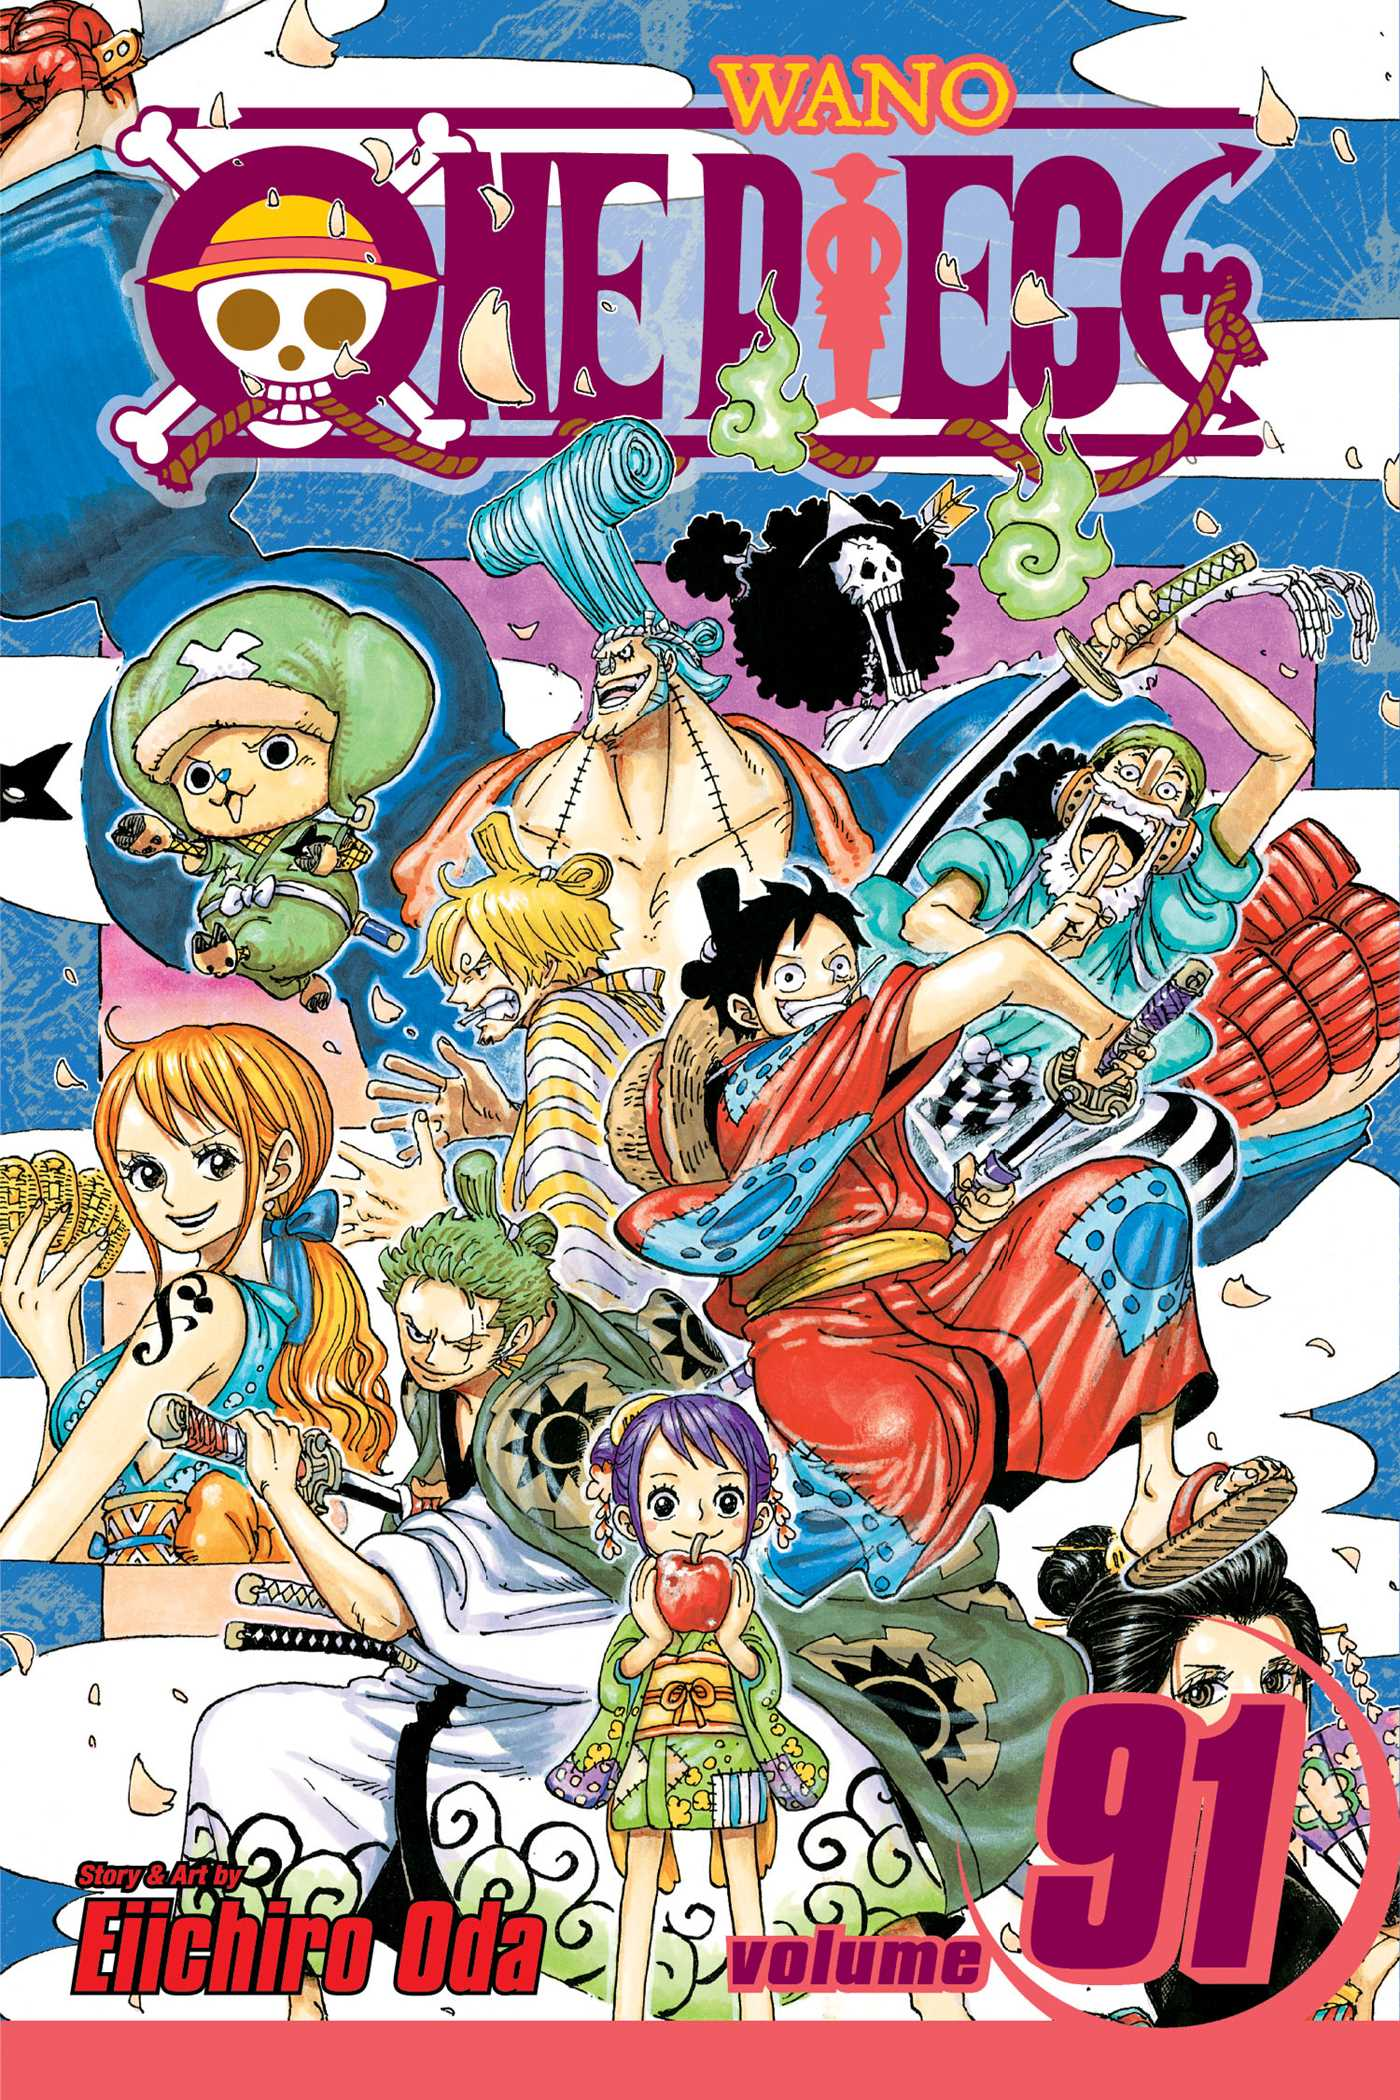 One Piece, Vol. 91   Book by Eiichiro Oda   Official Publisher Page   Simon & Schuster